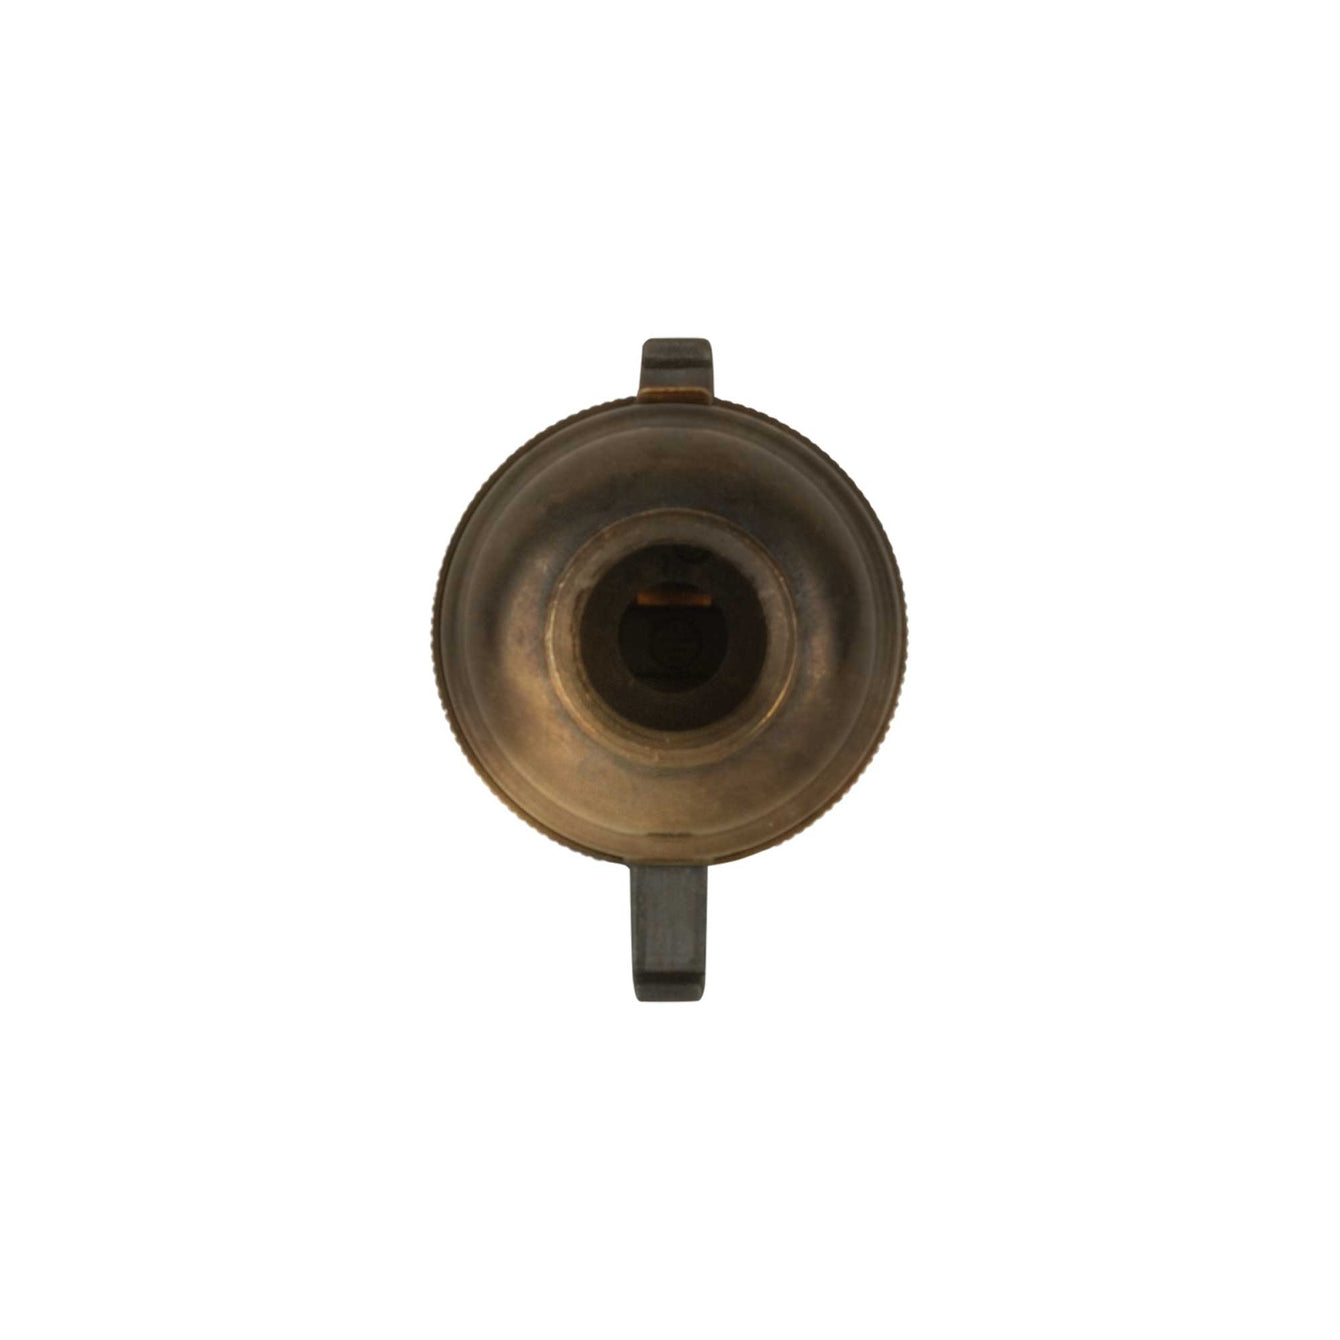 ElekTek Safety Switch Lamp Holder Bayonet Cap B22 10mm or Half Inch Entry With Shade Ring Solid Brass - Buy It Better